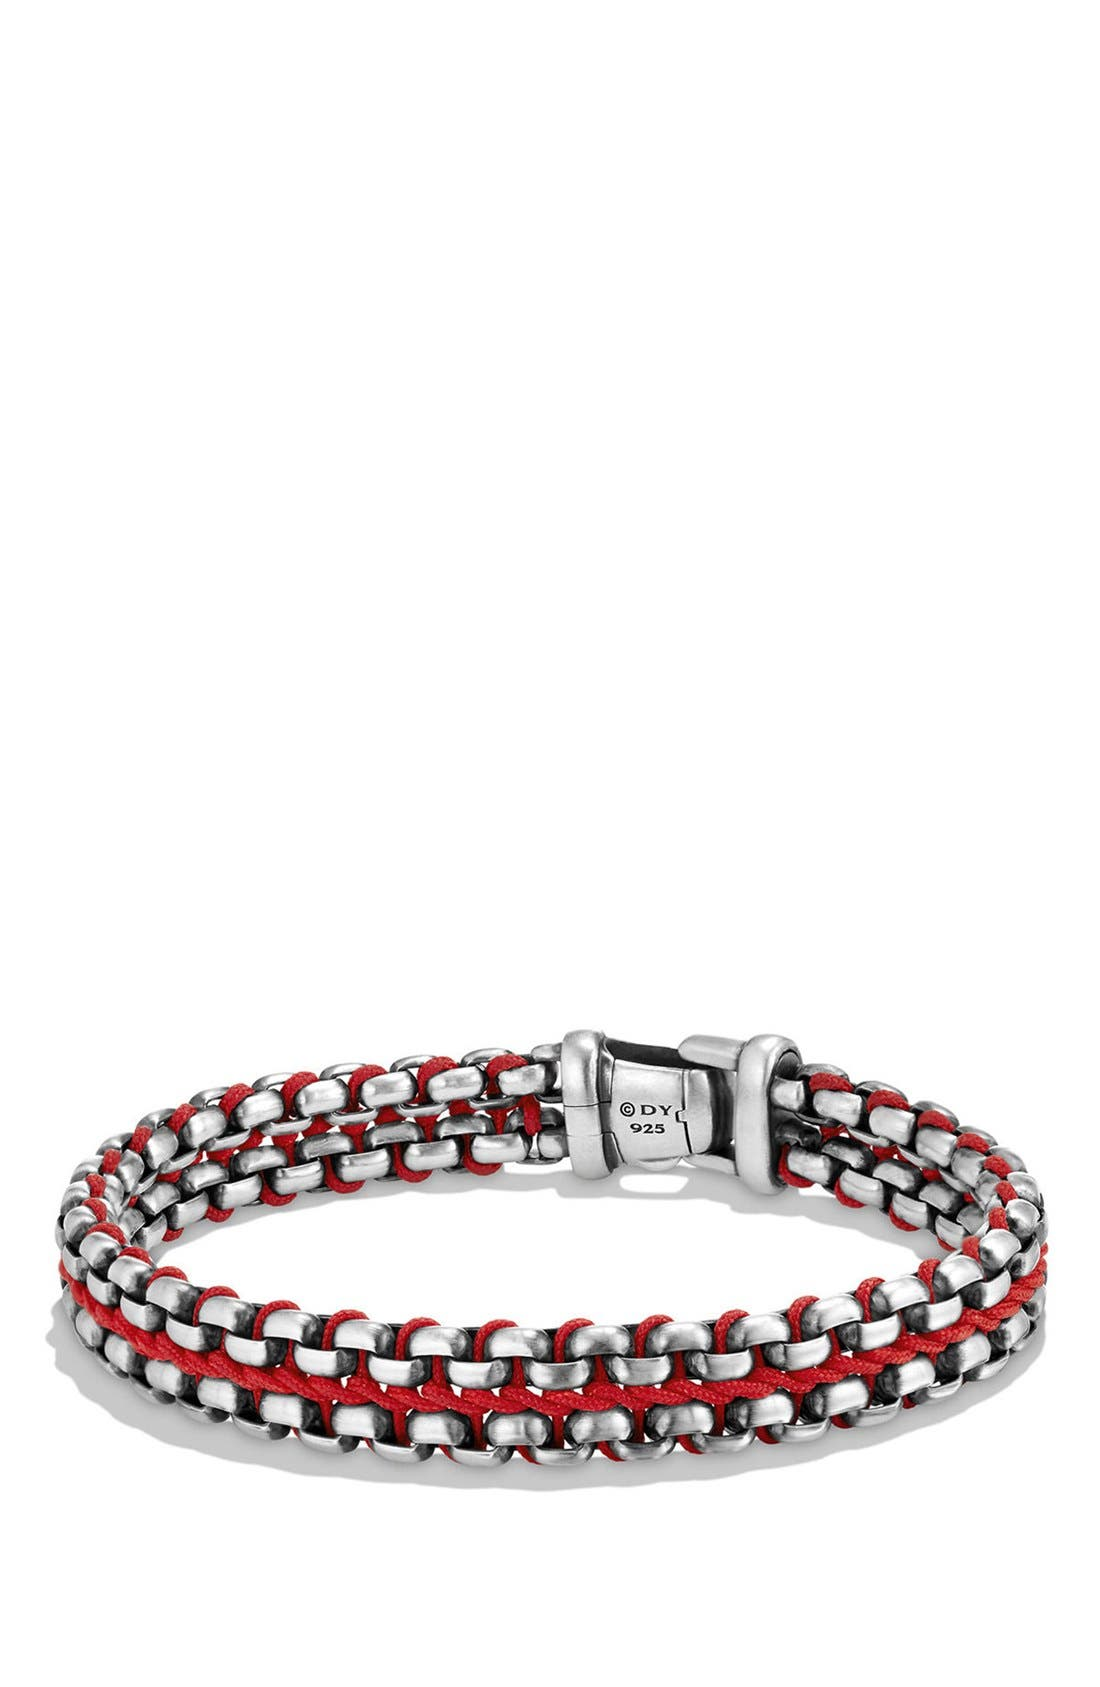 David Yurman 'Chain' Woven Box Chain Bracelet